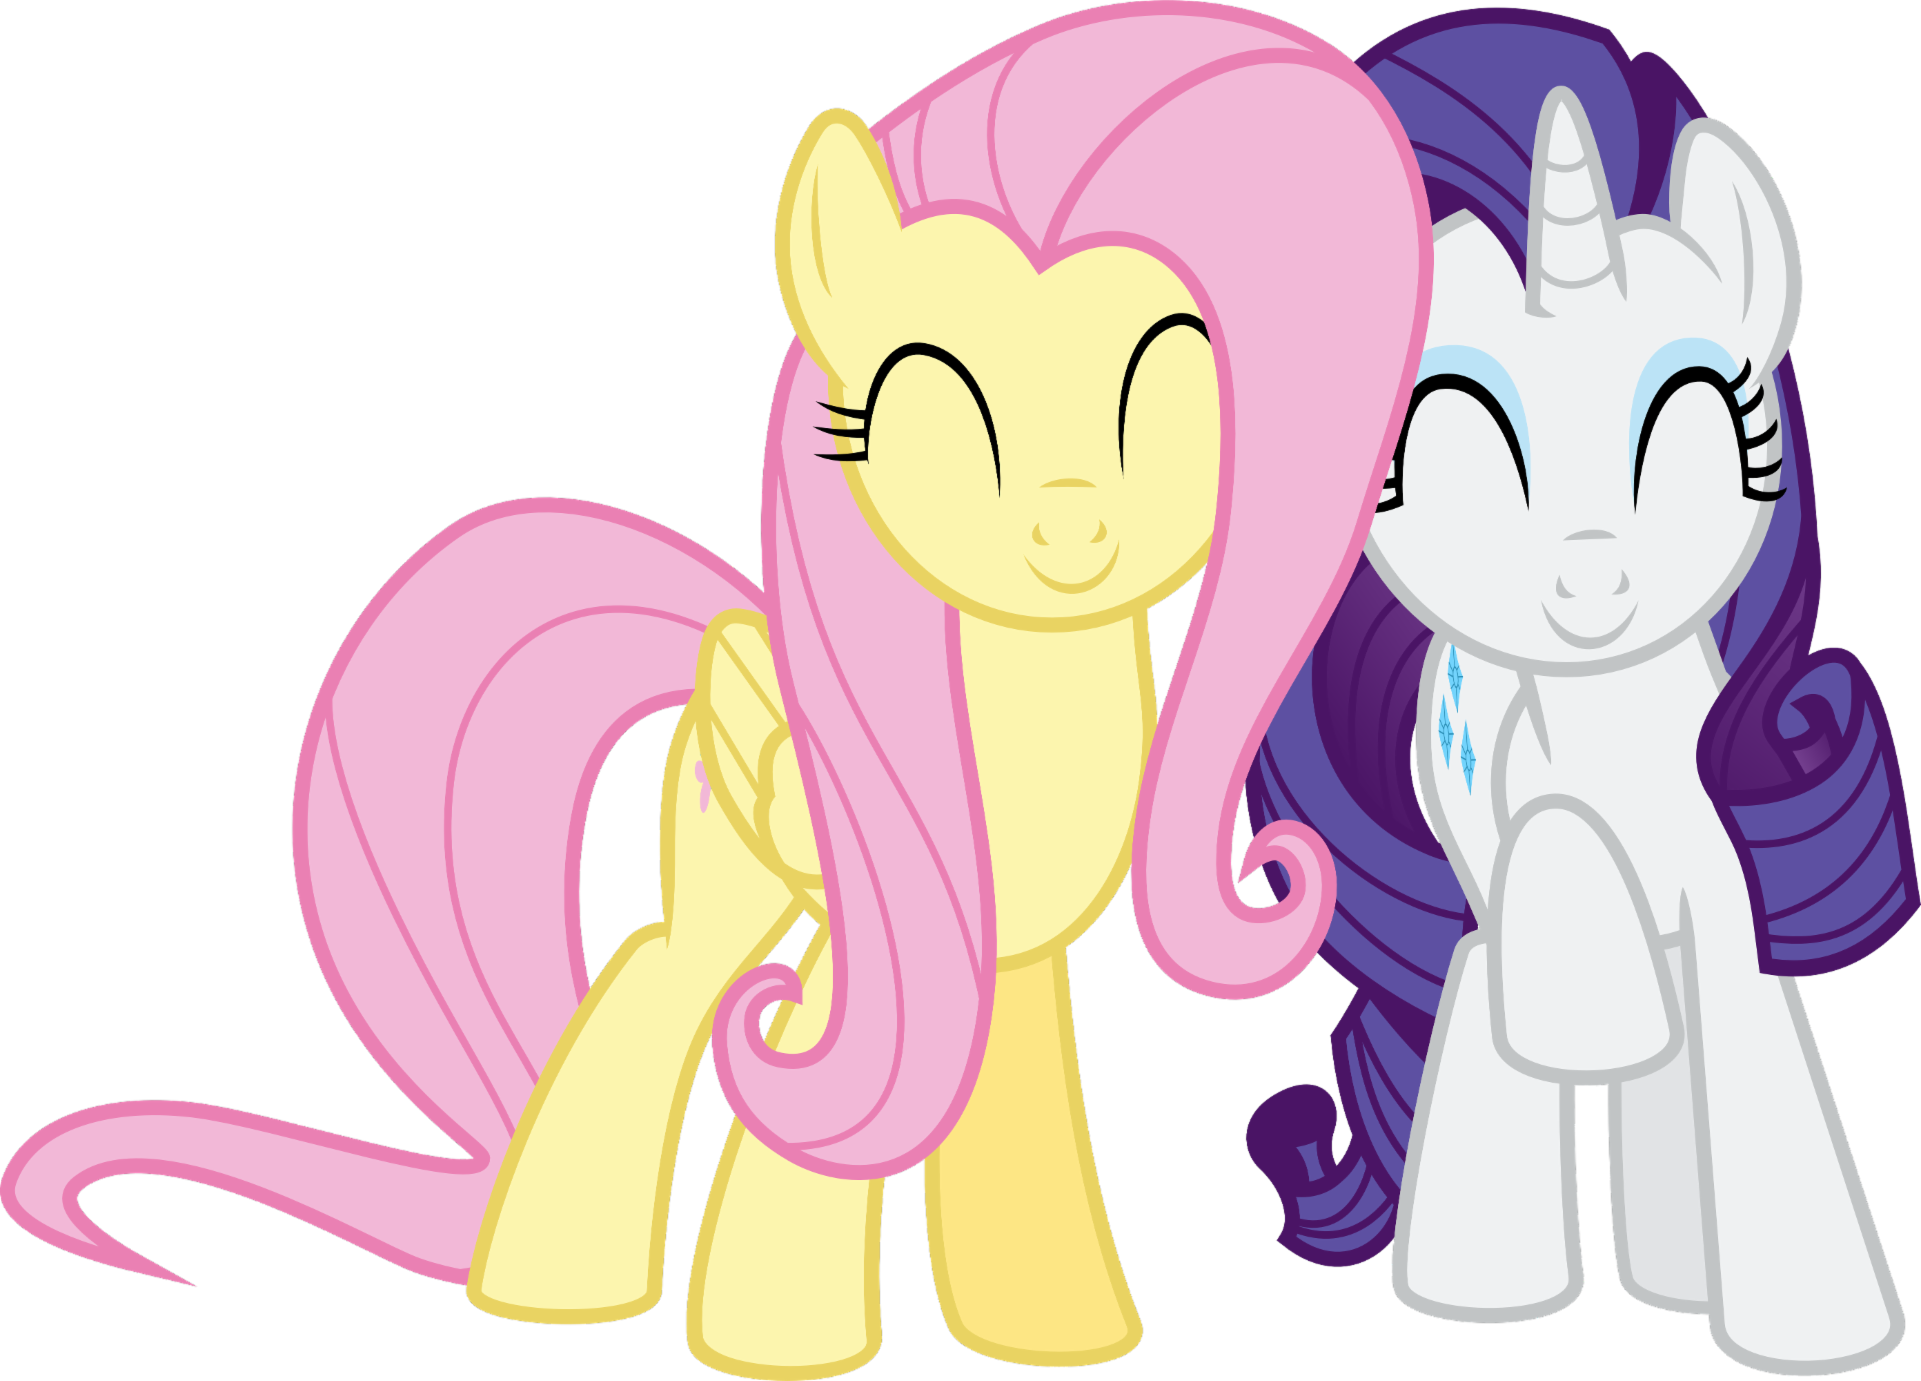 Rarity or Fluttershy?